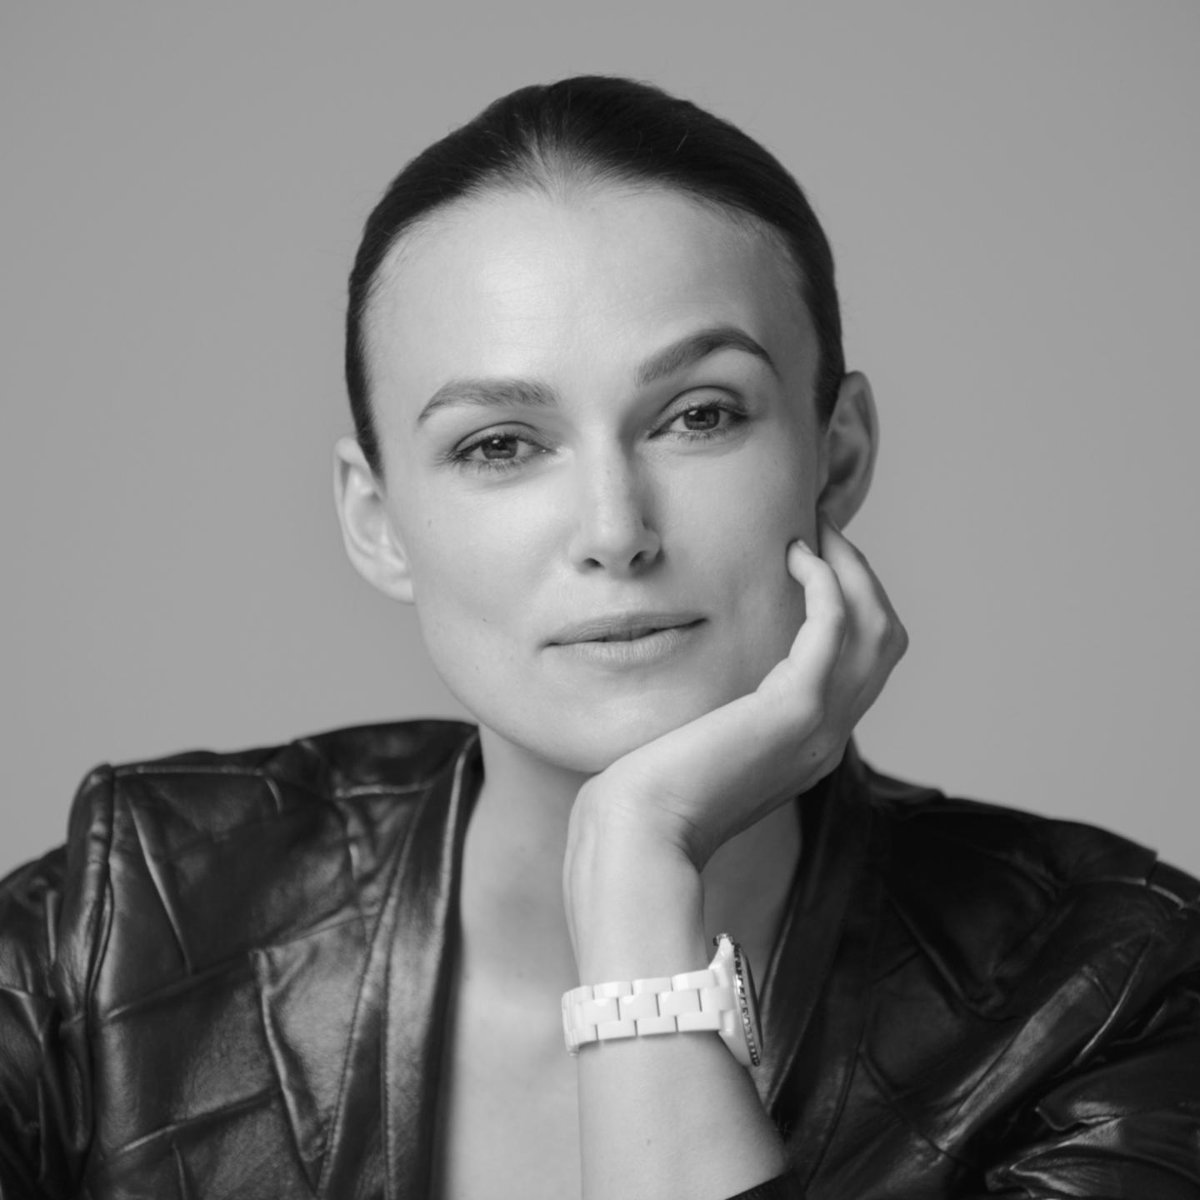 """Every job I take or don't take is a decisive moment."" Keira Knightley wears the white ceramic version of the new J12 watch and tells us about how she views time and the seconds that changed her life. Discover on http://chanel.com/-j12KeiraKnightley … #TheNewJ12 #ItsAllAboutSeconds"